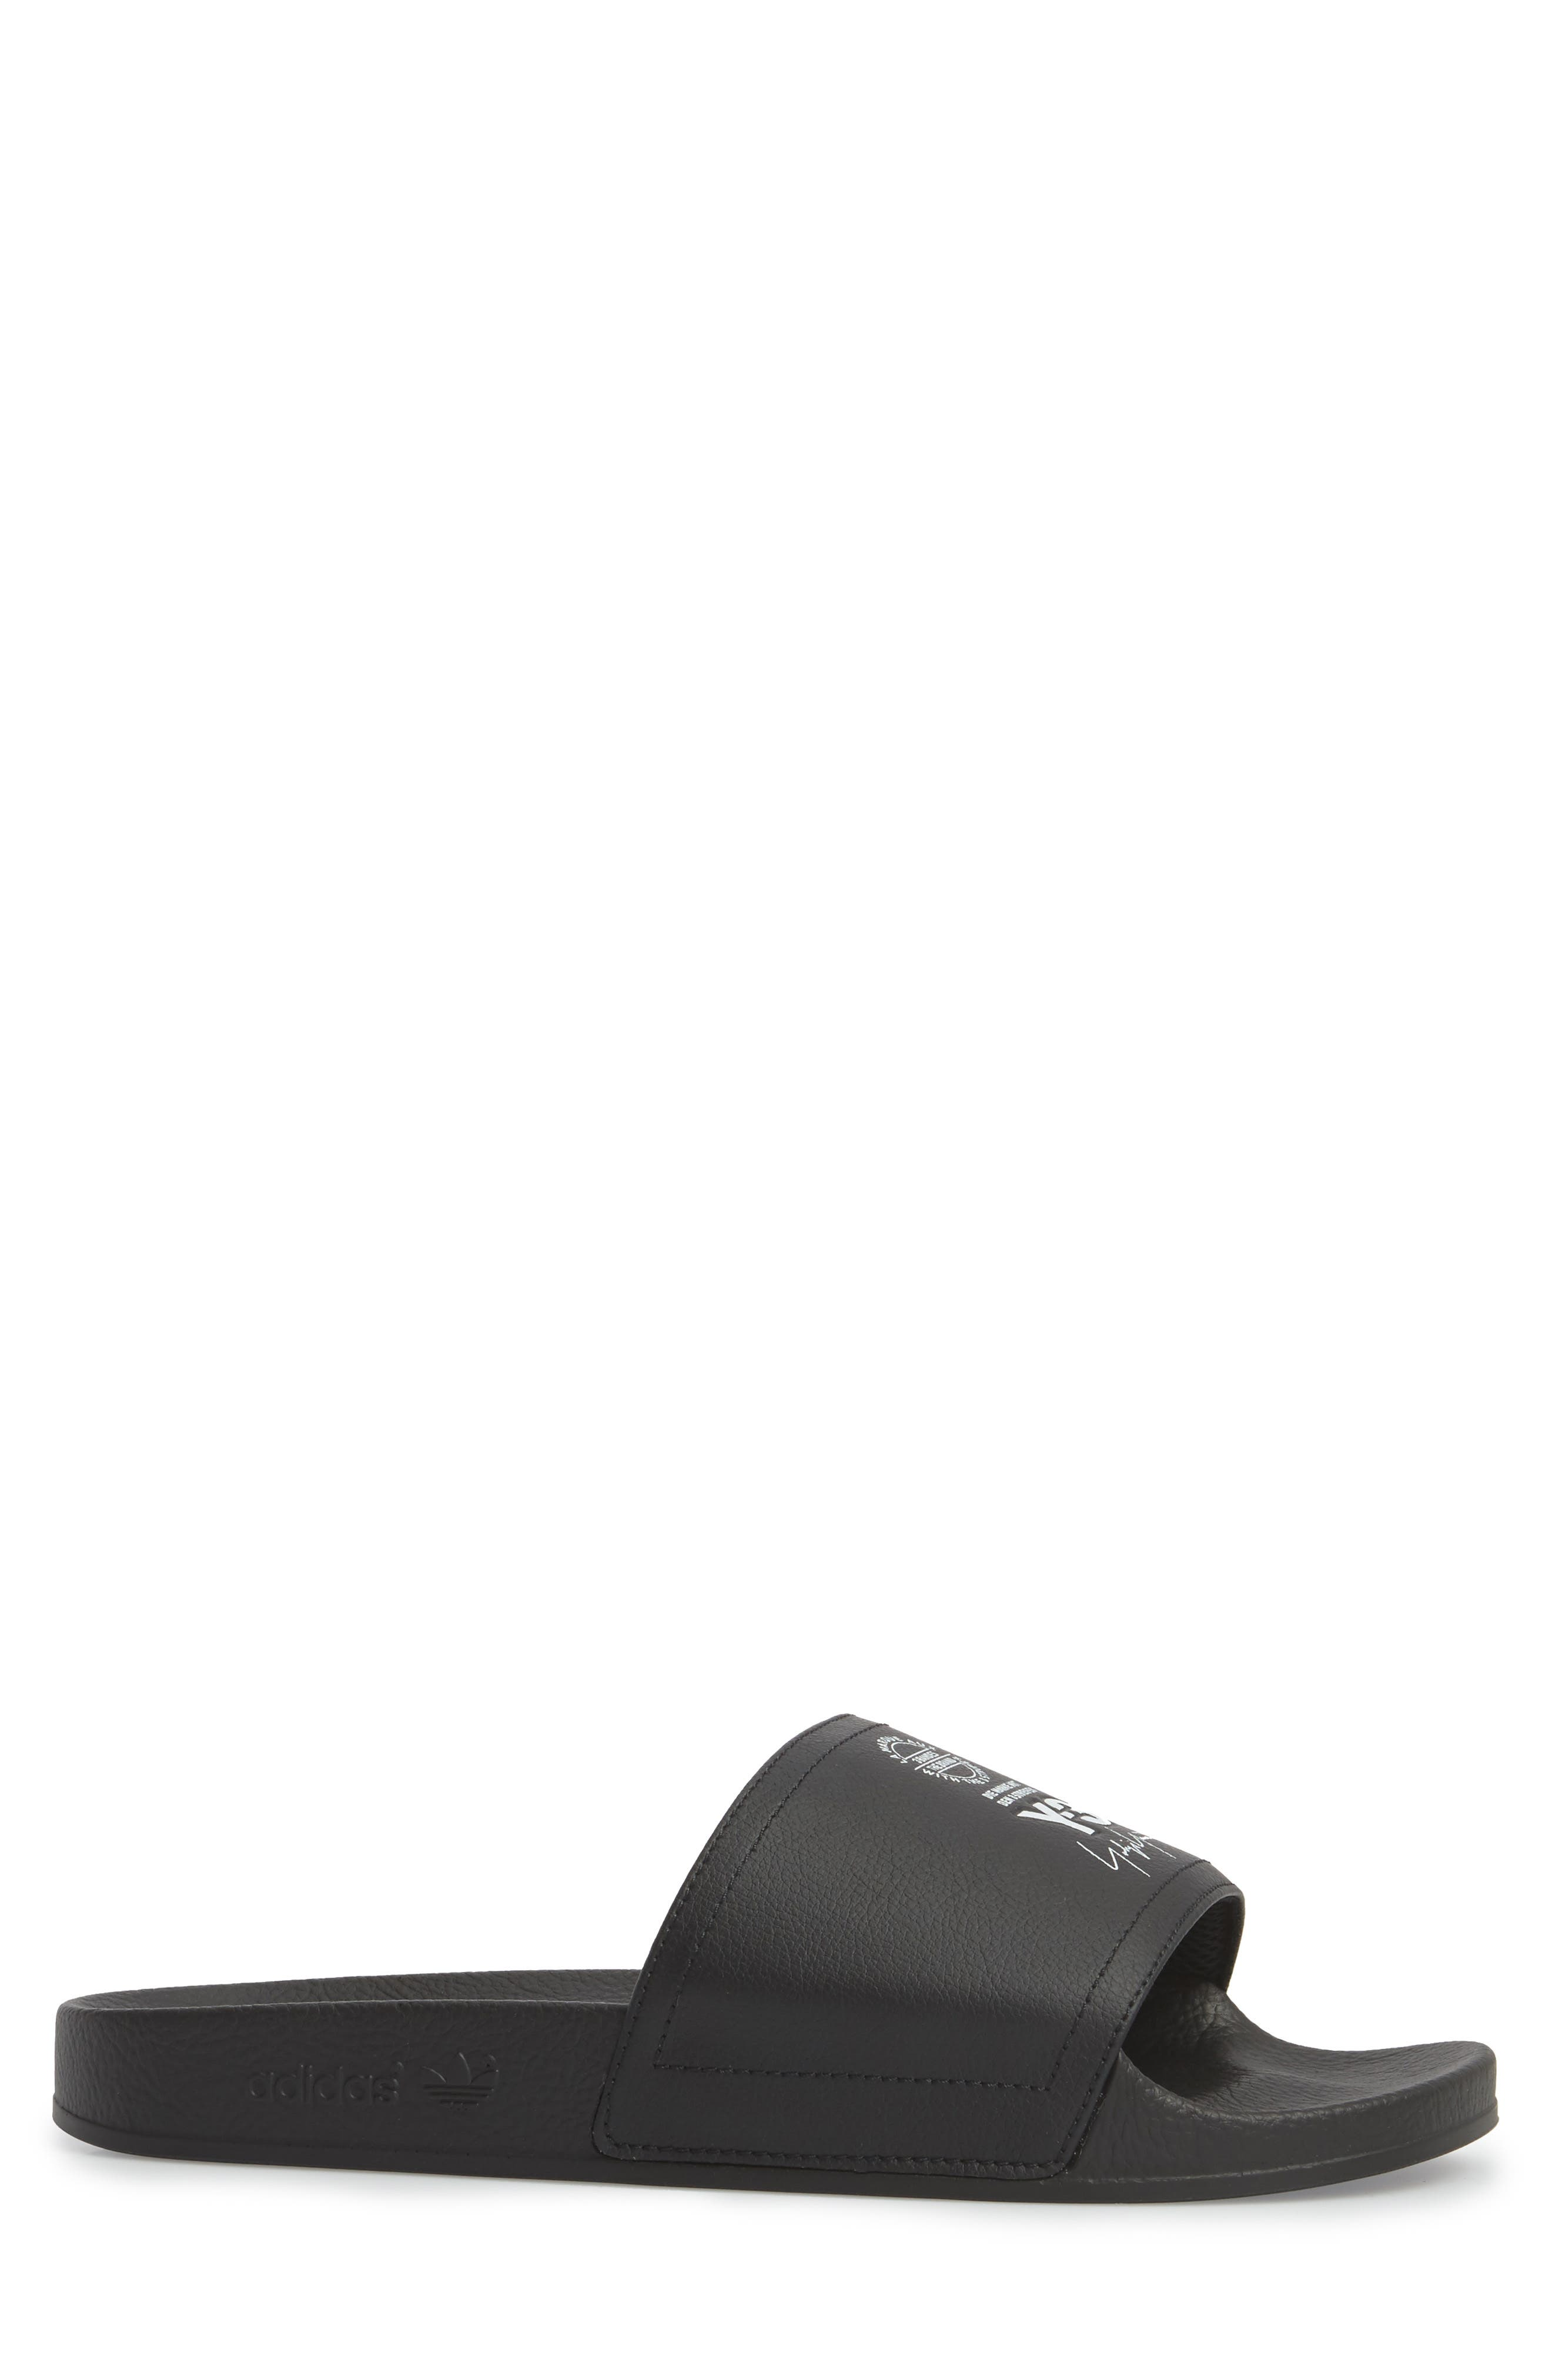 Y-3,                             Adilette Slide Sandal,                             Alternate thumbnail 3, color,                             001